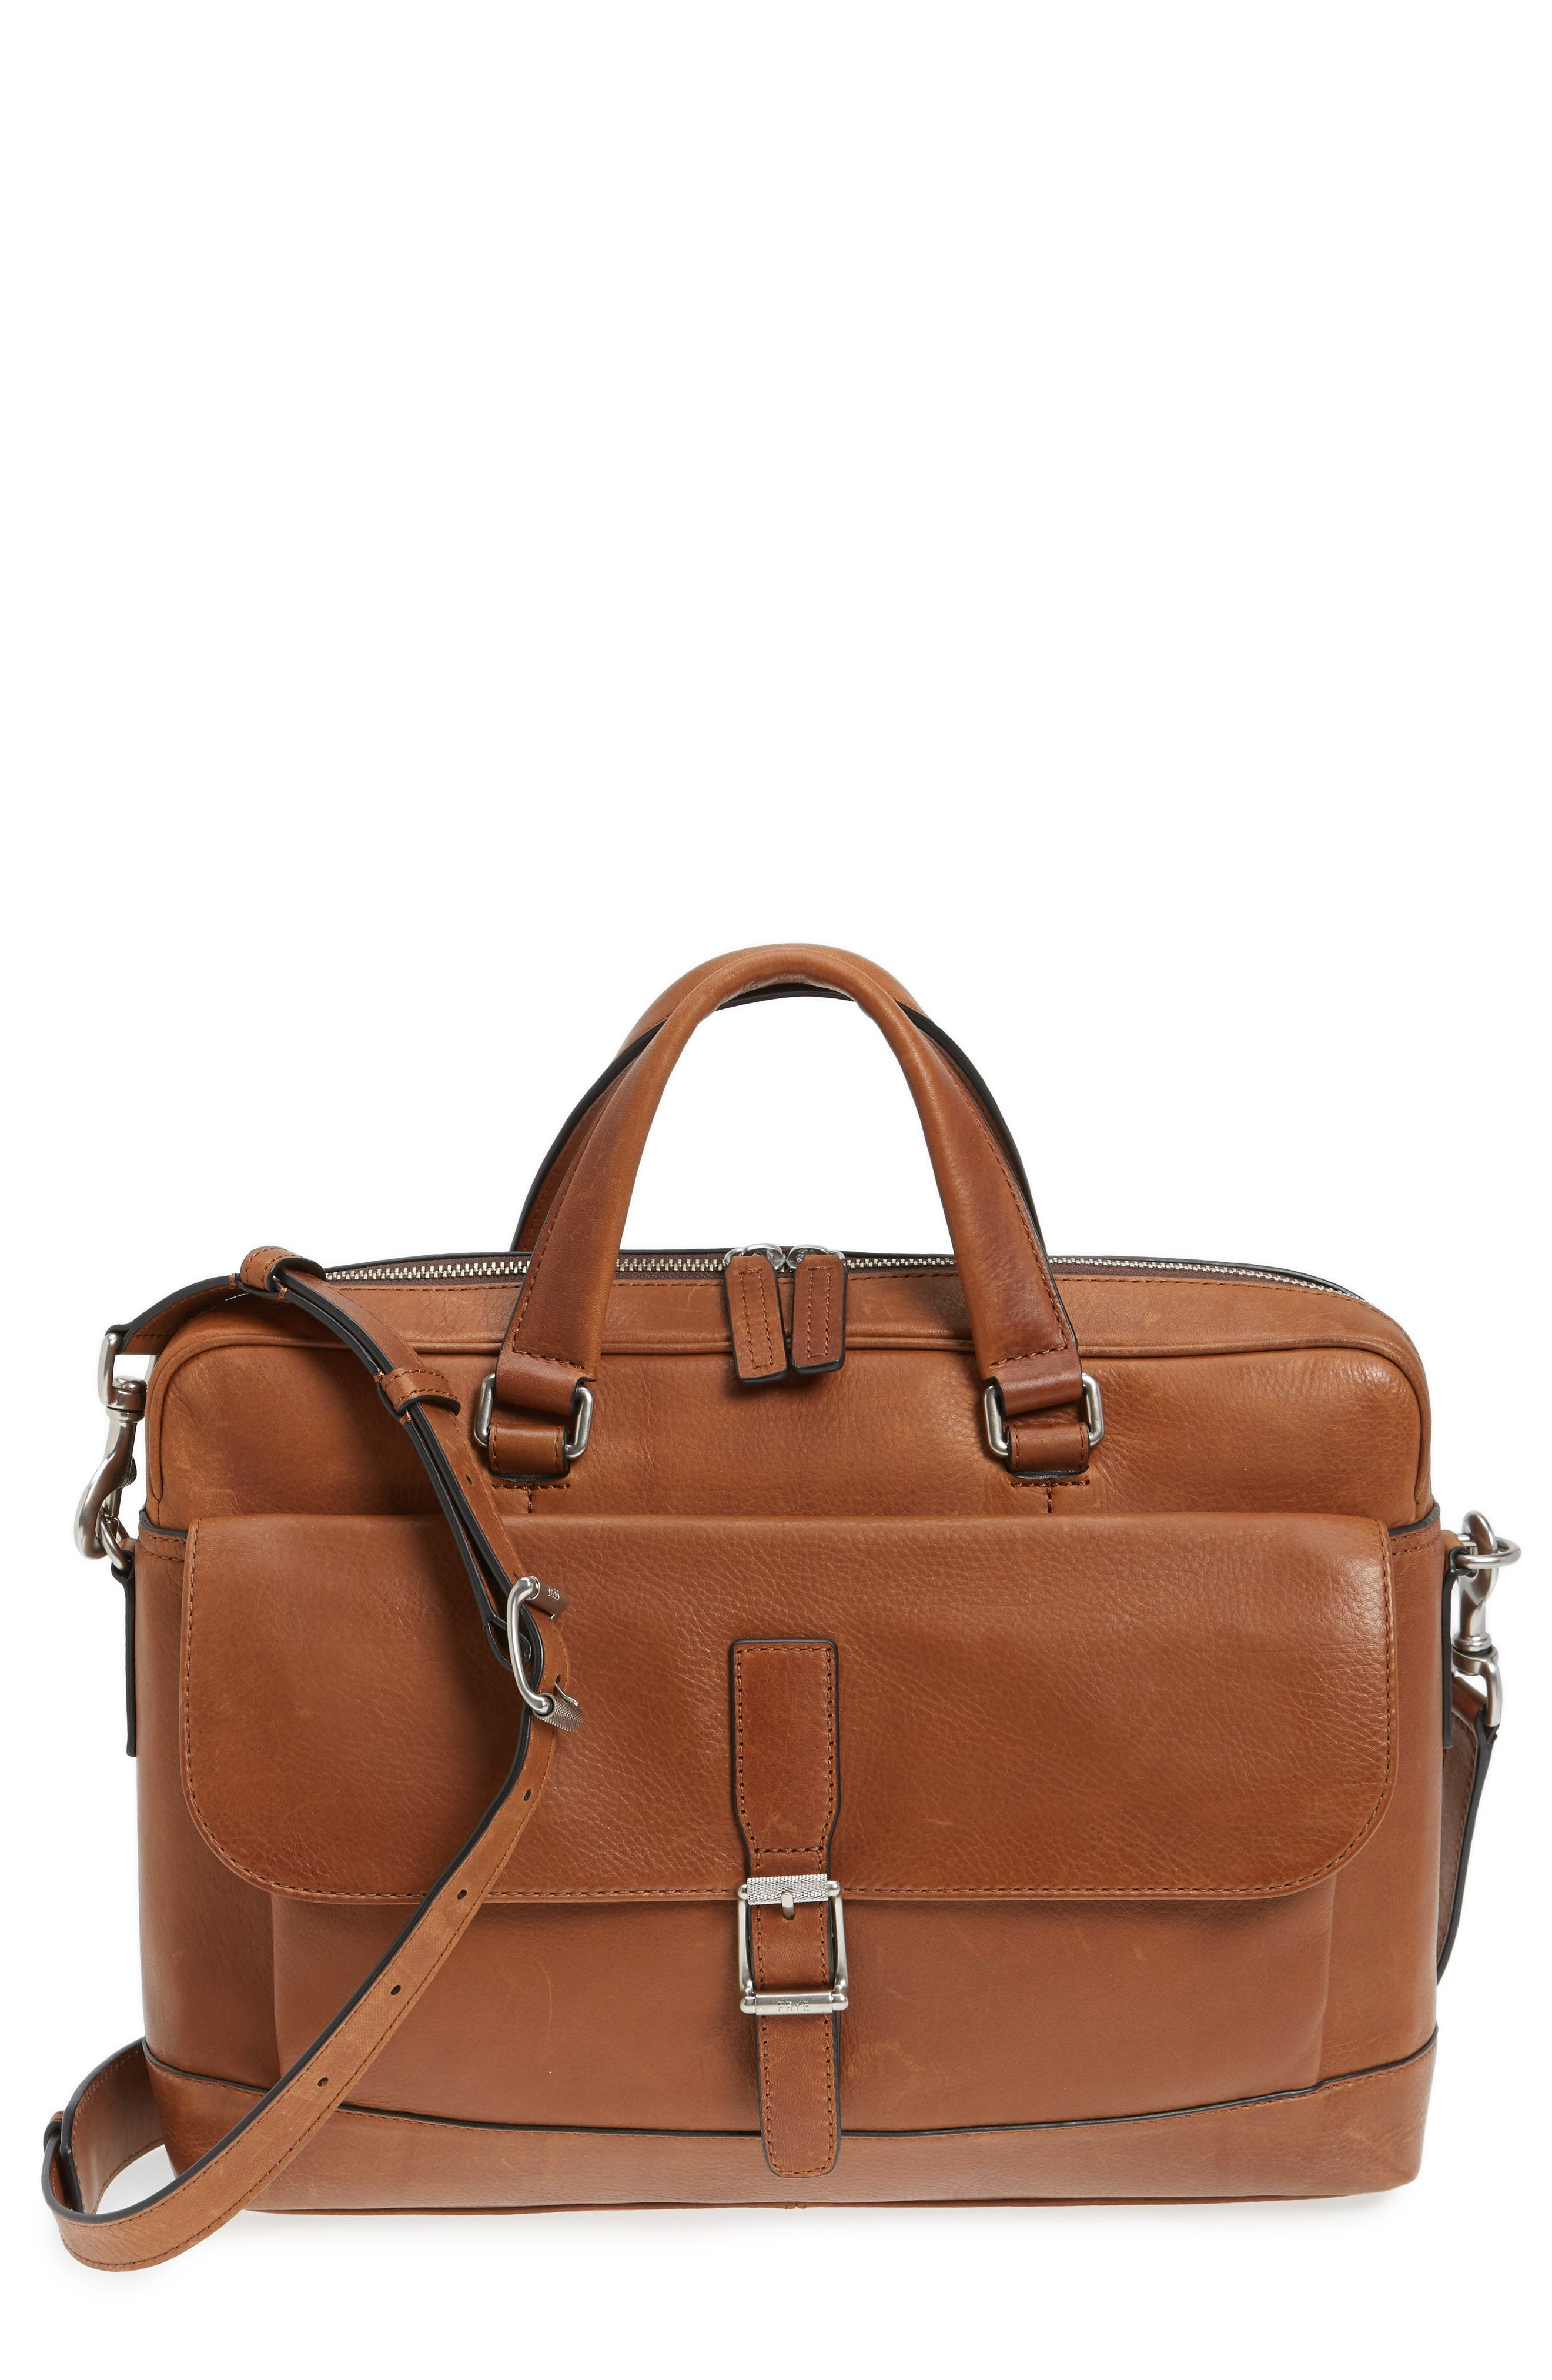 Oliver Leather Briefcase,                         Main,                         color, COGNAC